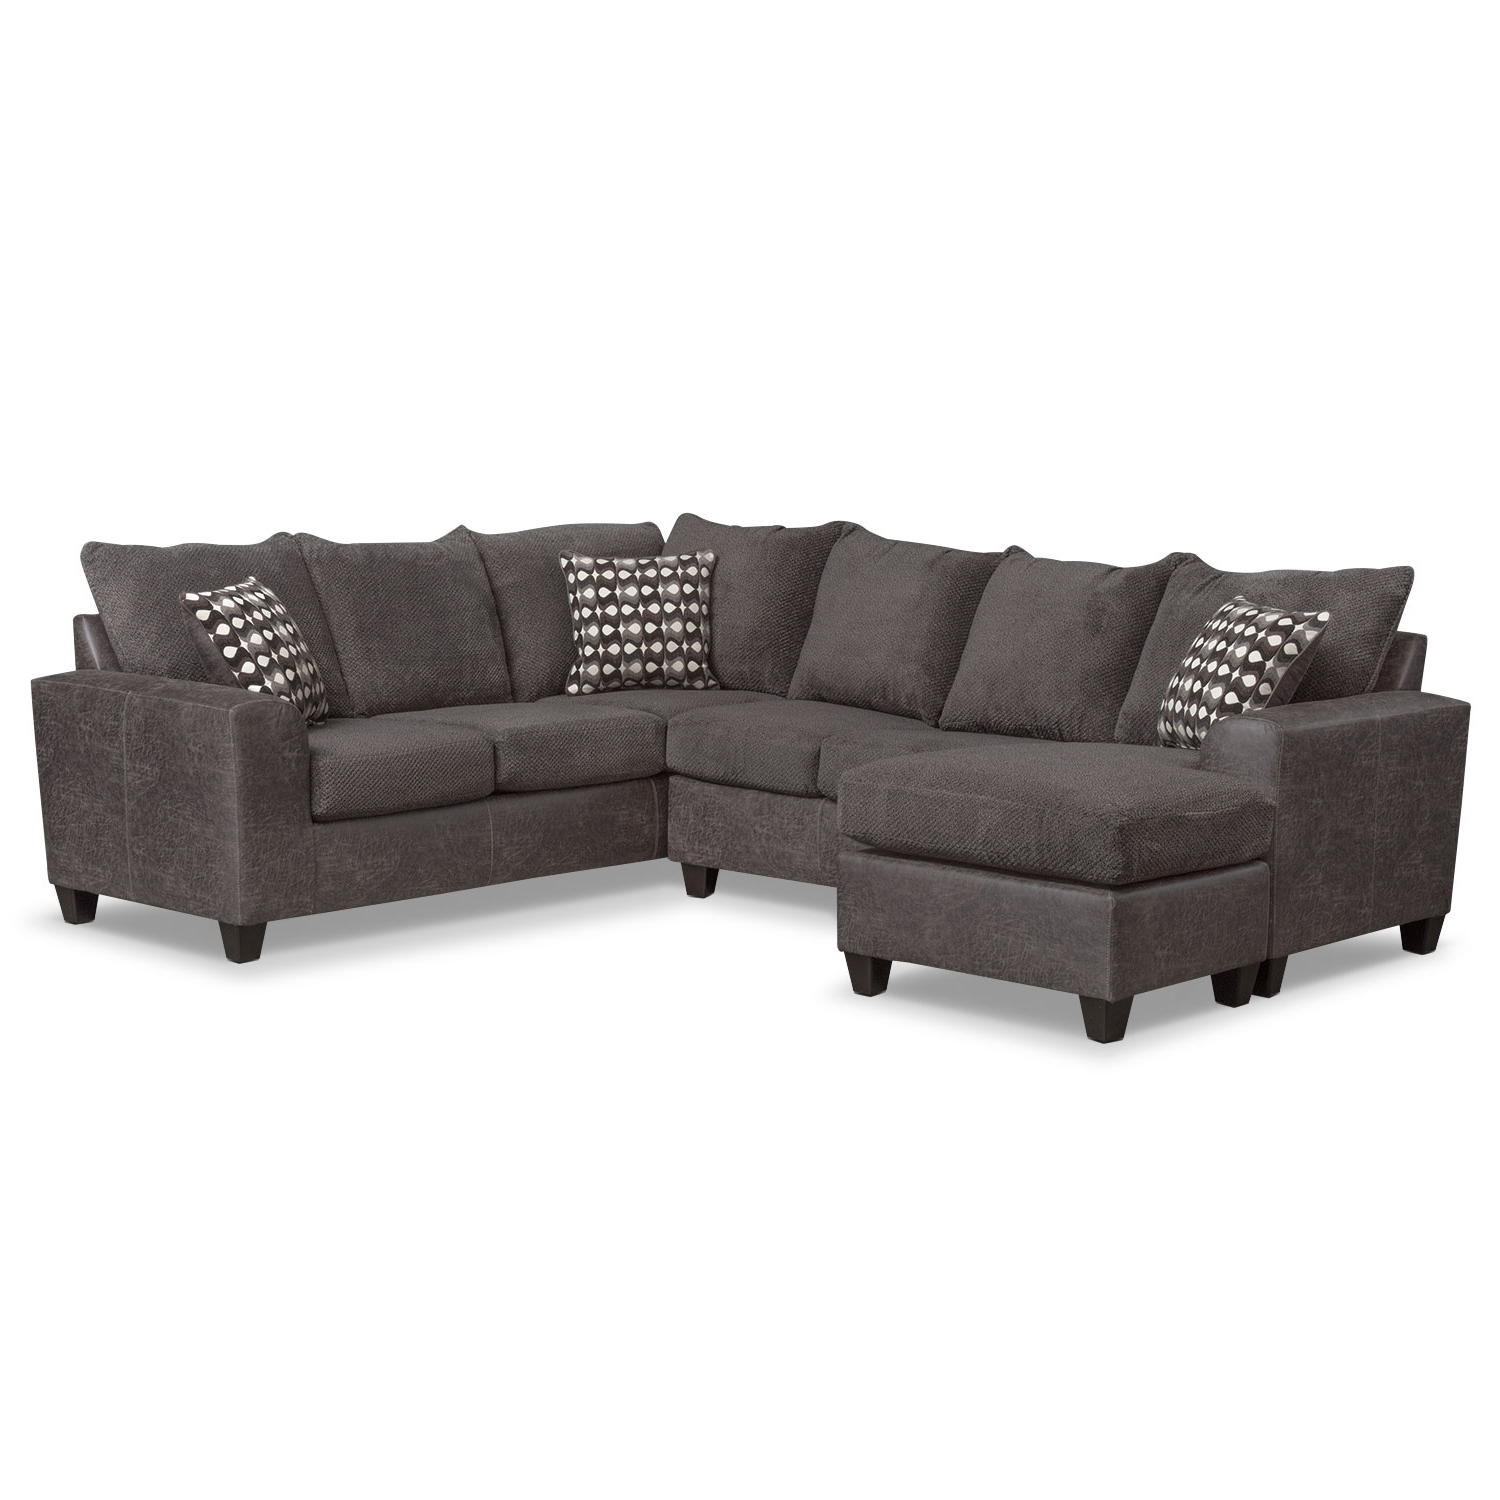 Brando 3 Piece Sectional With Chaise And Swivel Chair Set – Smoke With Famous Value City Sectional Sofas (View 2 of 15)